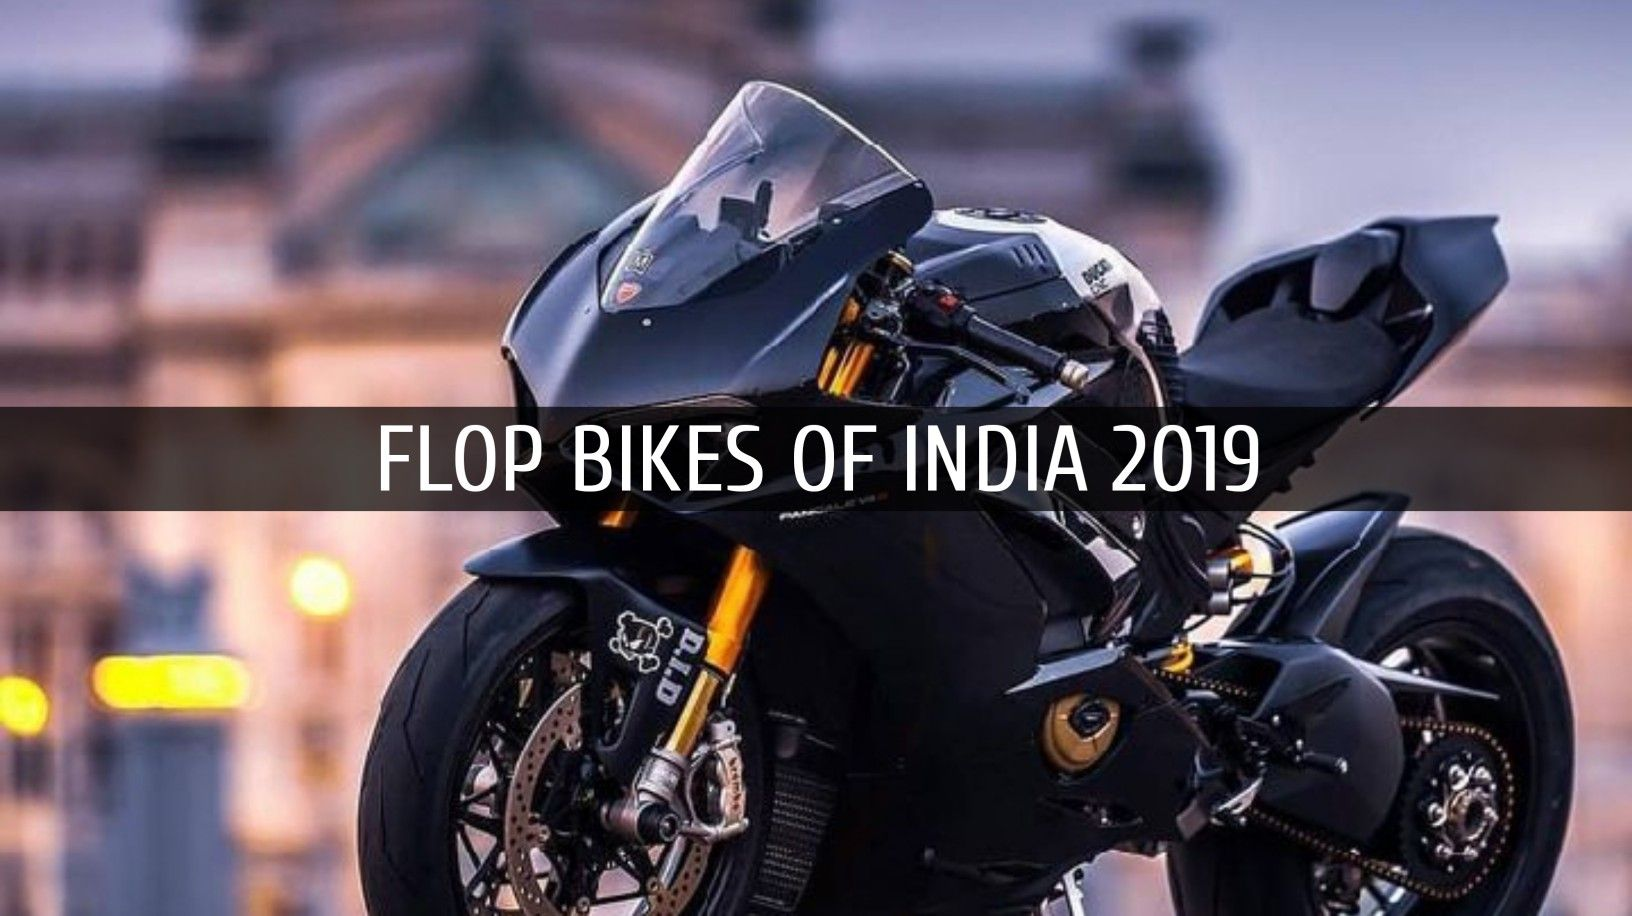 Top 5 Flop Bikes Of India 2019 Flop Bikes In India Topic I Cover